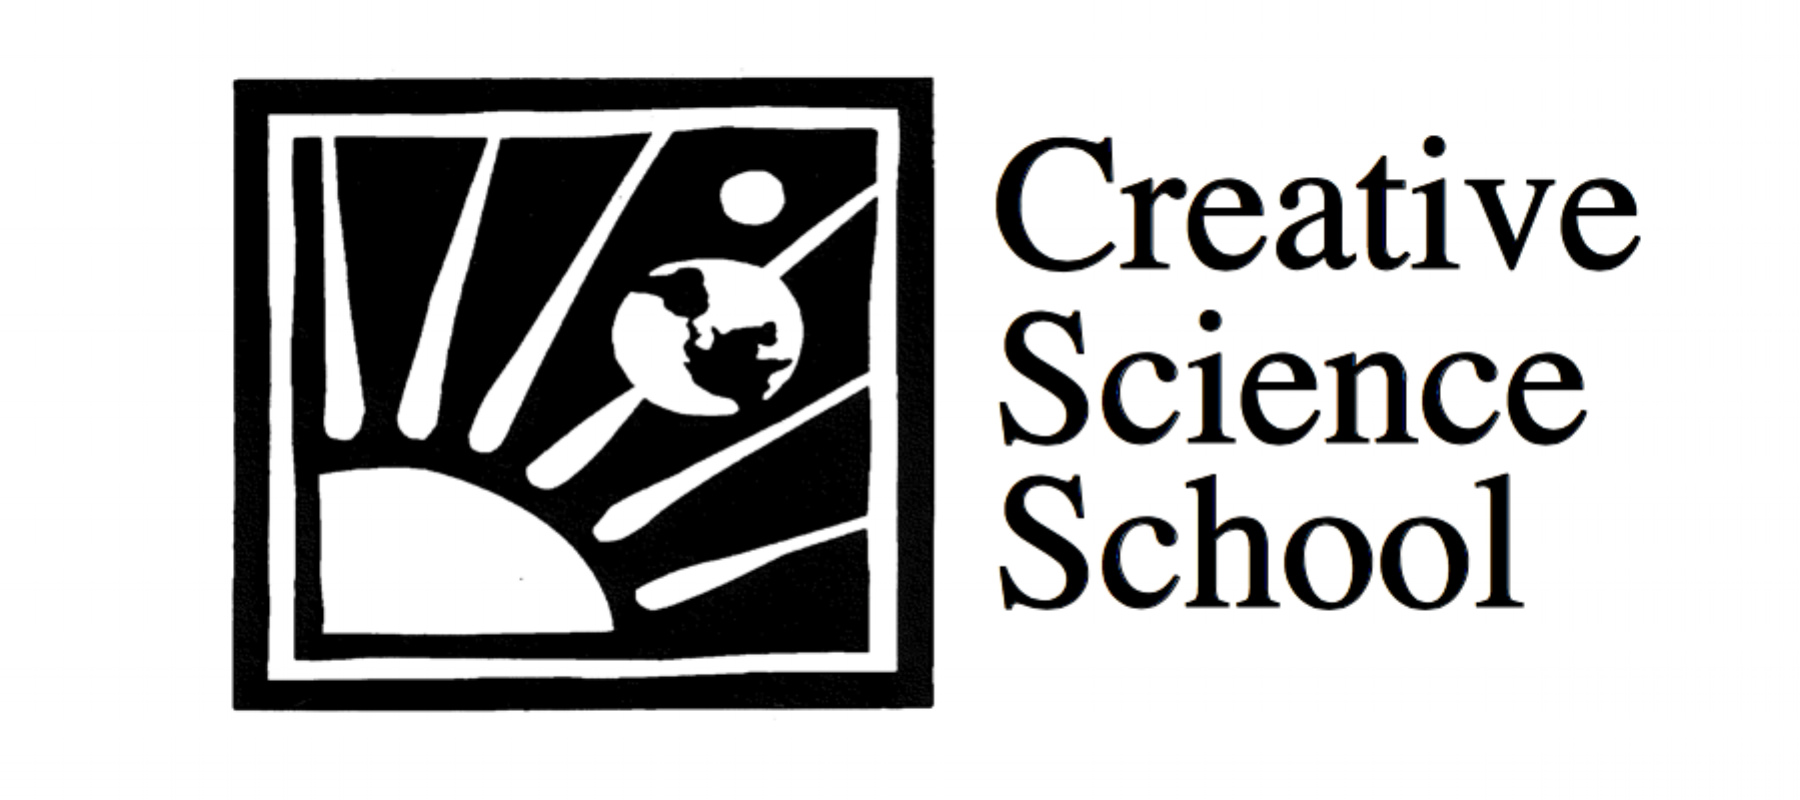 Creative Science School